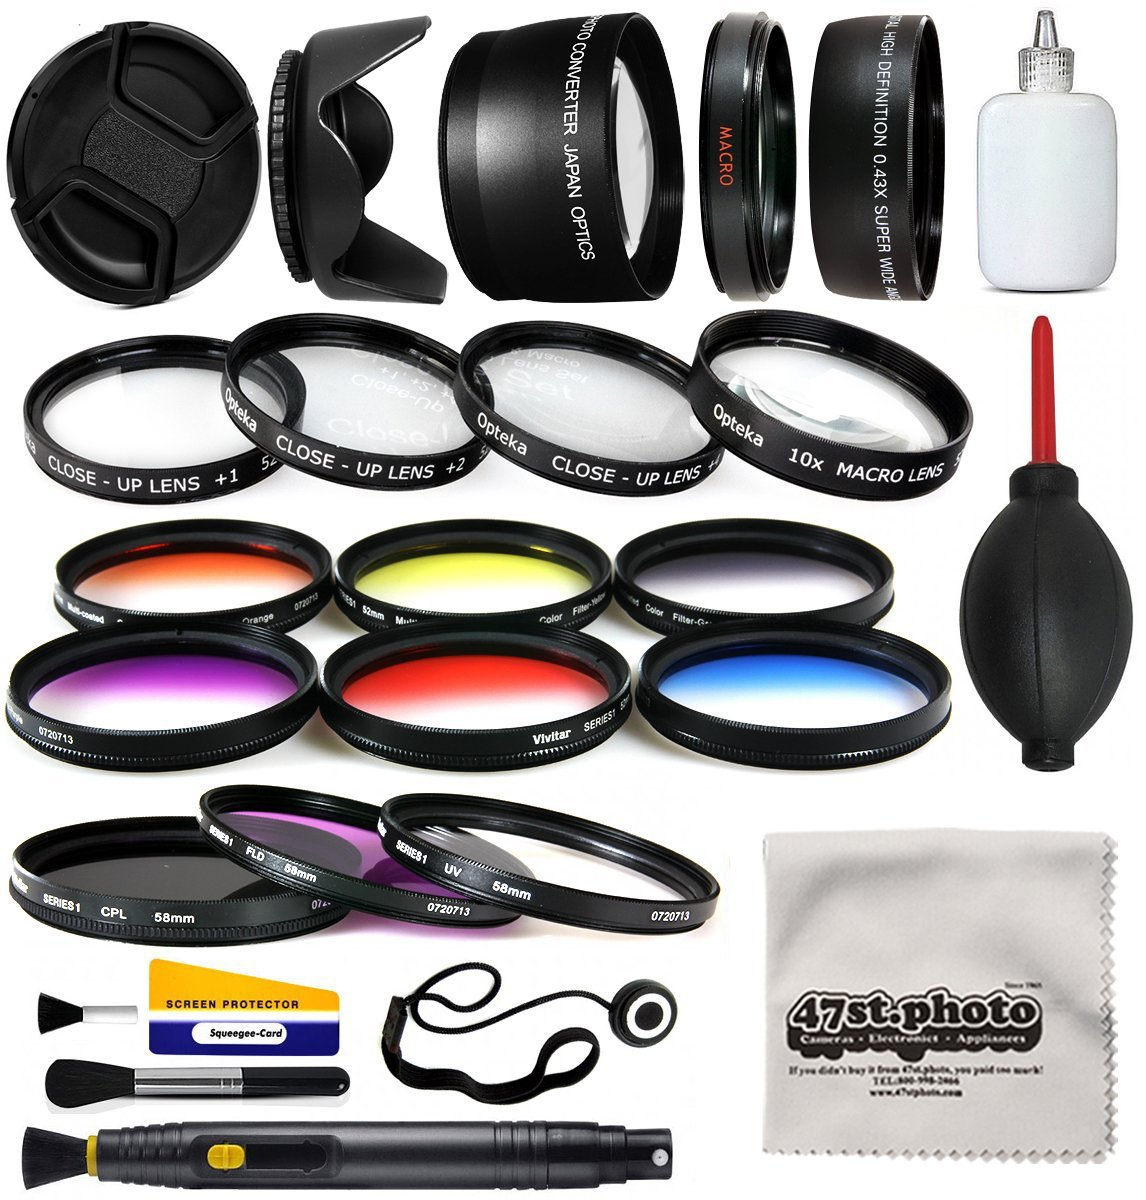 58mm Professional Lens +Filter Kit for DSLR Cameras featuring HD 0.43x Wide Lens + HD 2.2x Tele Lens + 13 Pcs HD filter package + more for Canon Rebel SL1 SL2 T5 T5i T6 T6I T7 T7i Digital SLR Cameras by 47th Street Photo